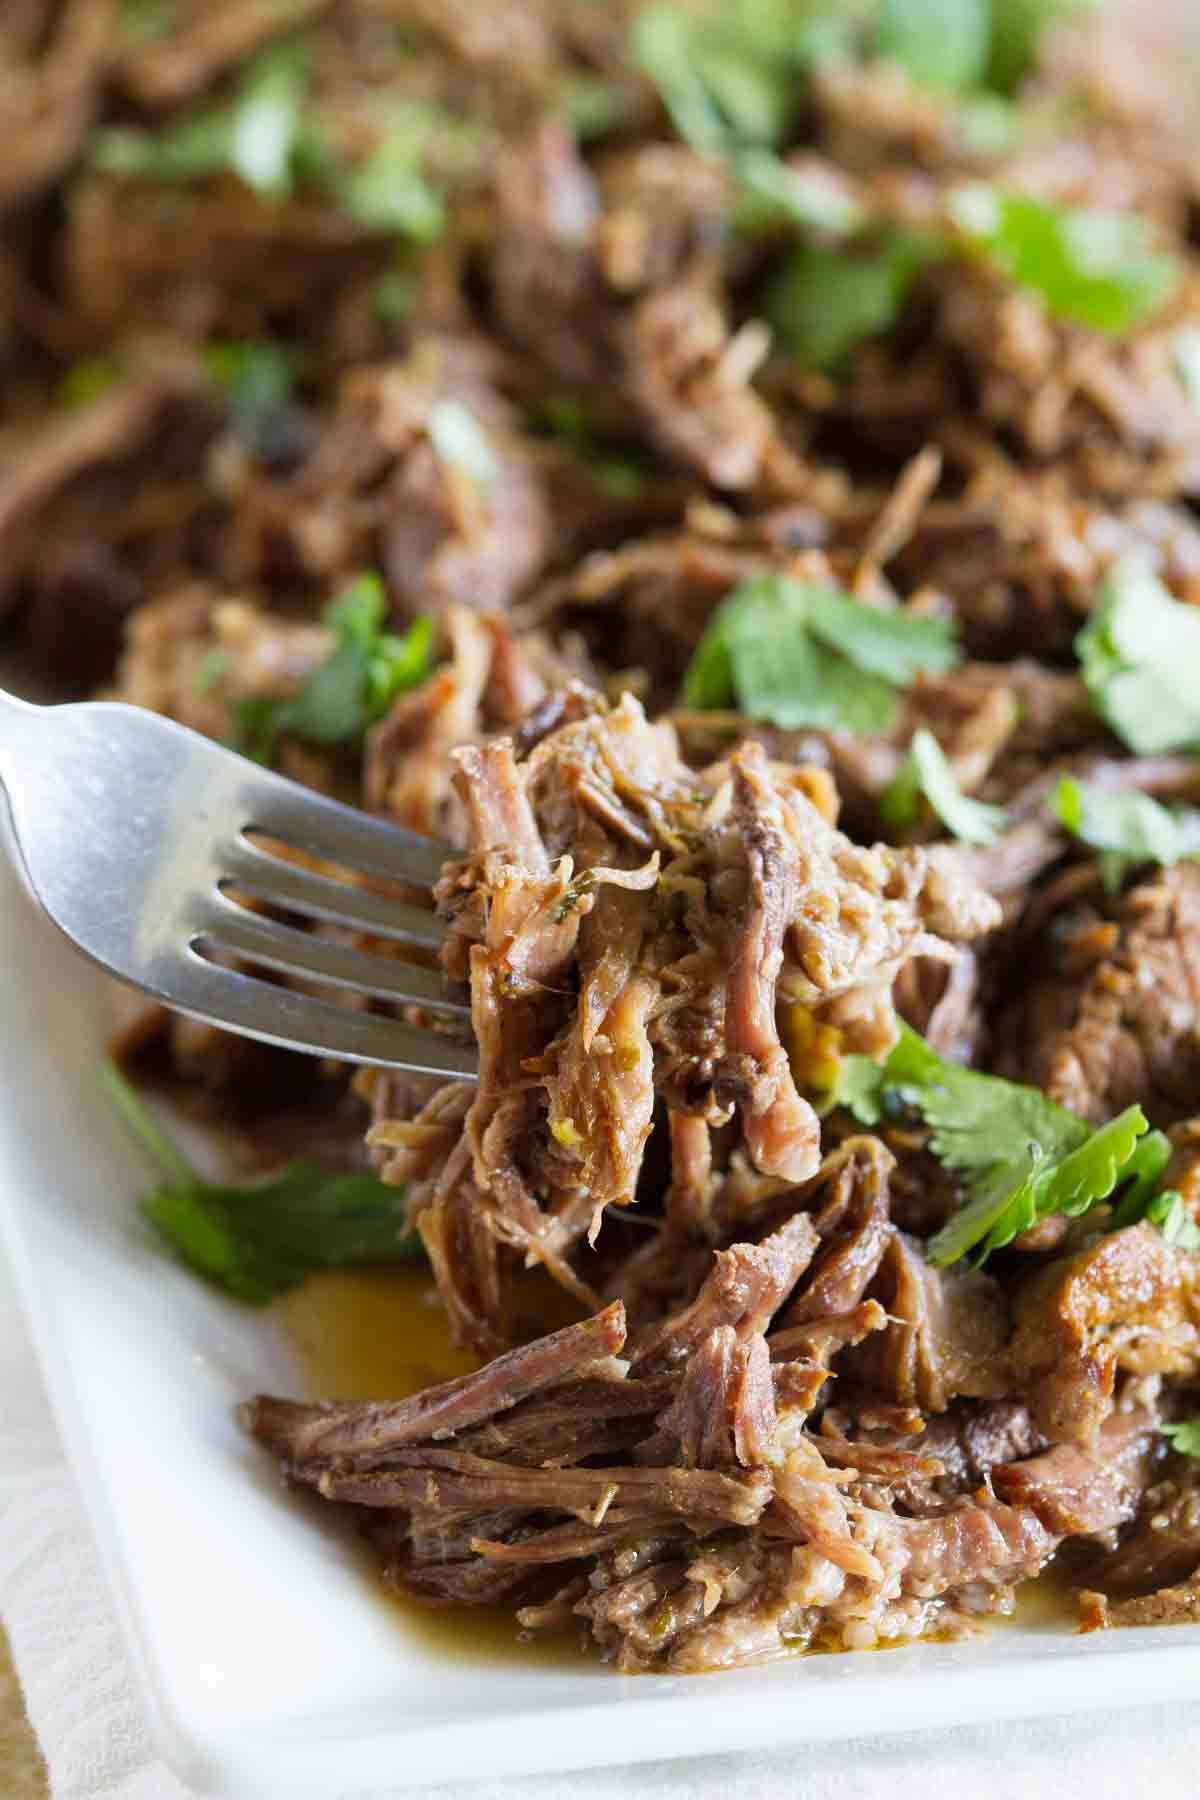 fork full of shredded beef to show texture